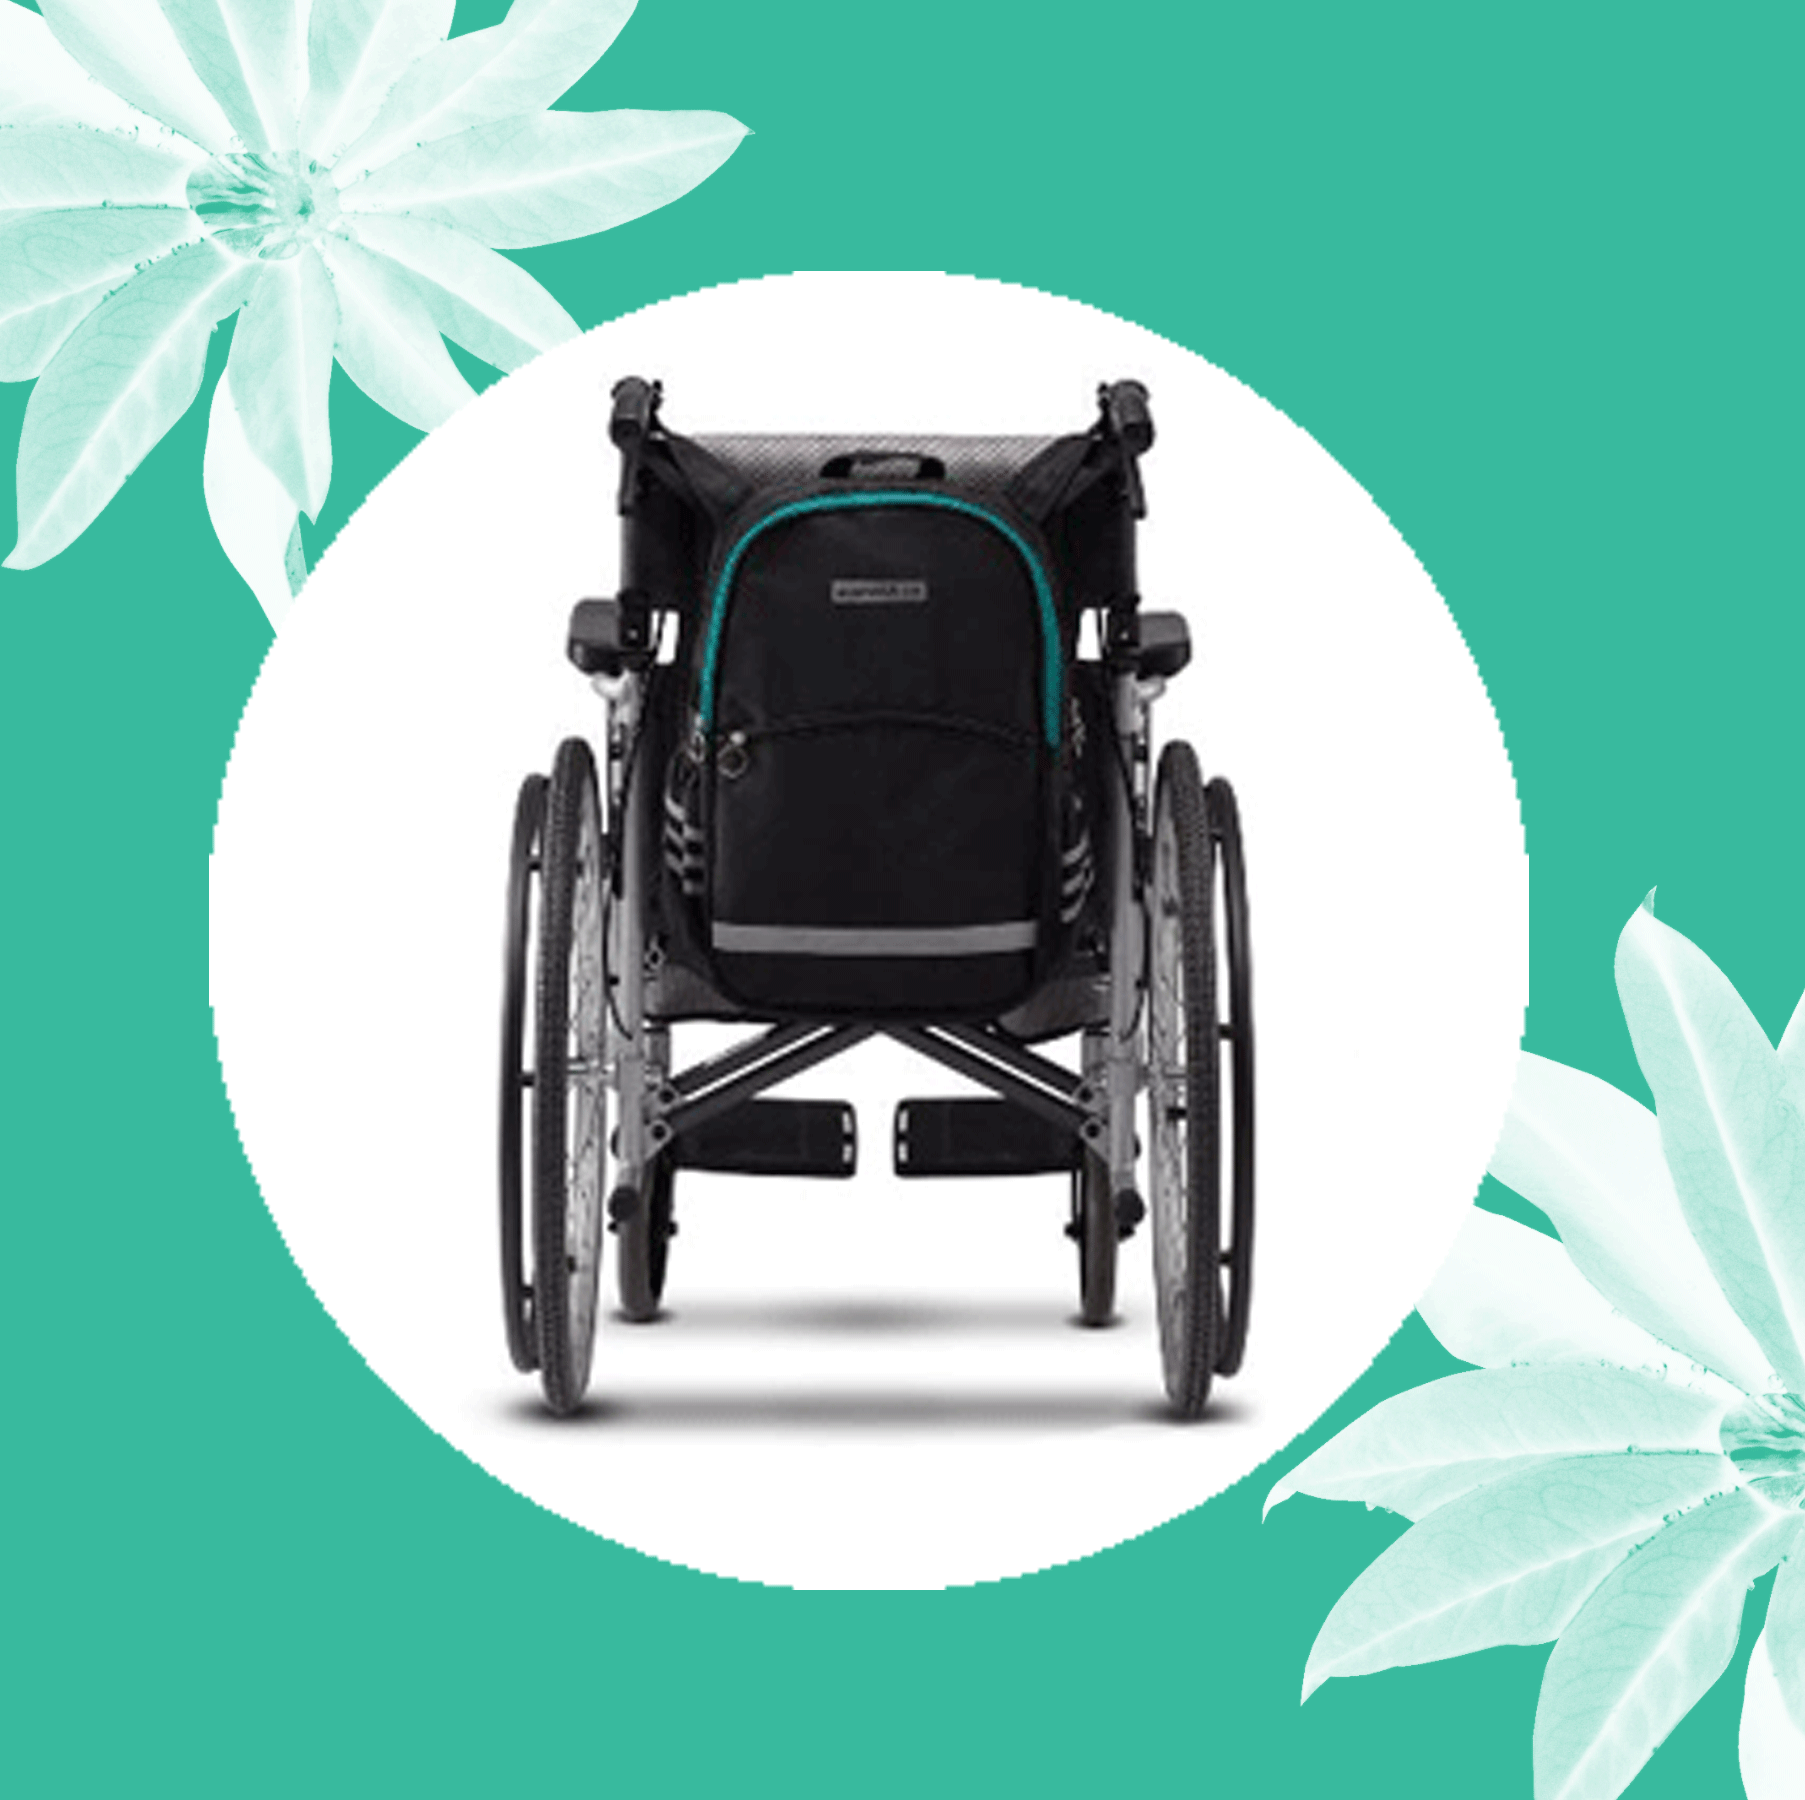 Introducing three new wheelchair accessories allowing you